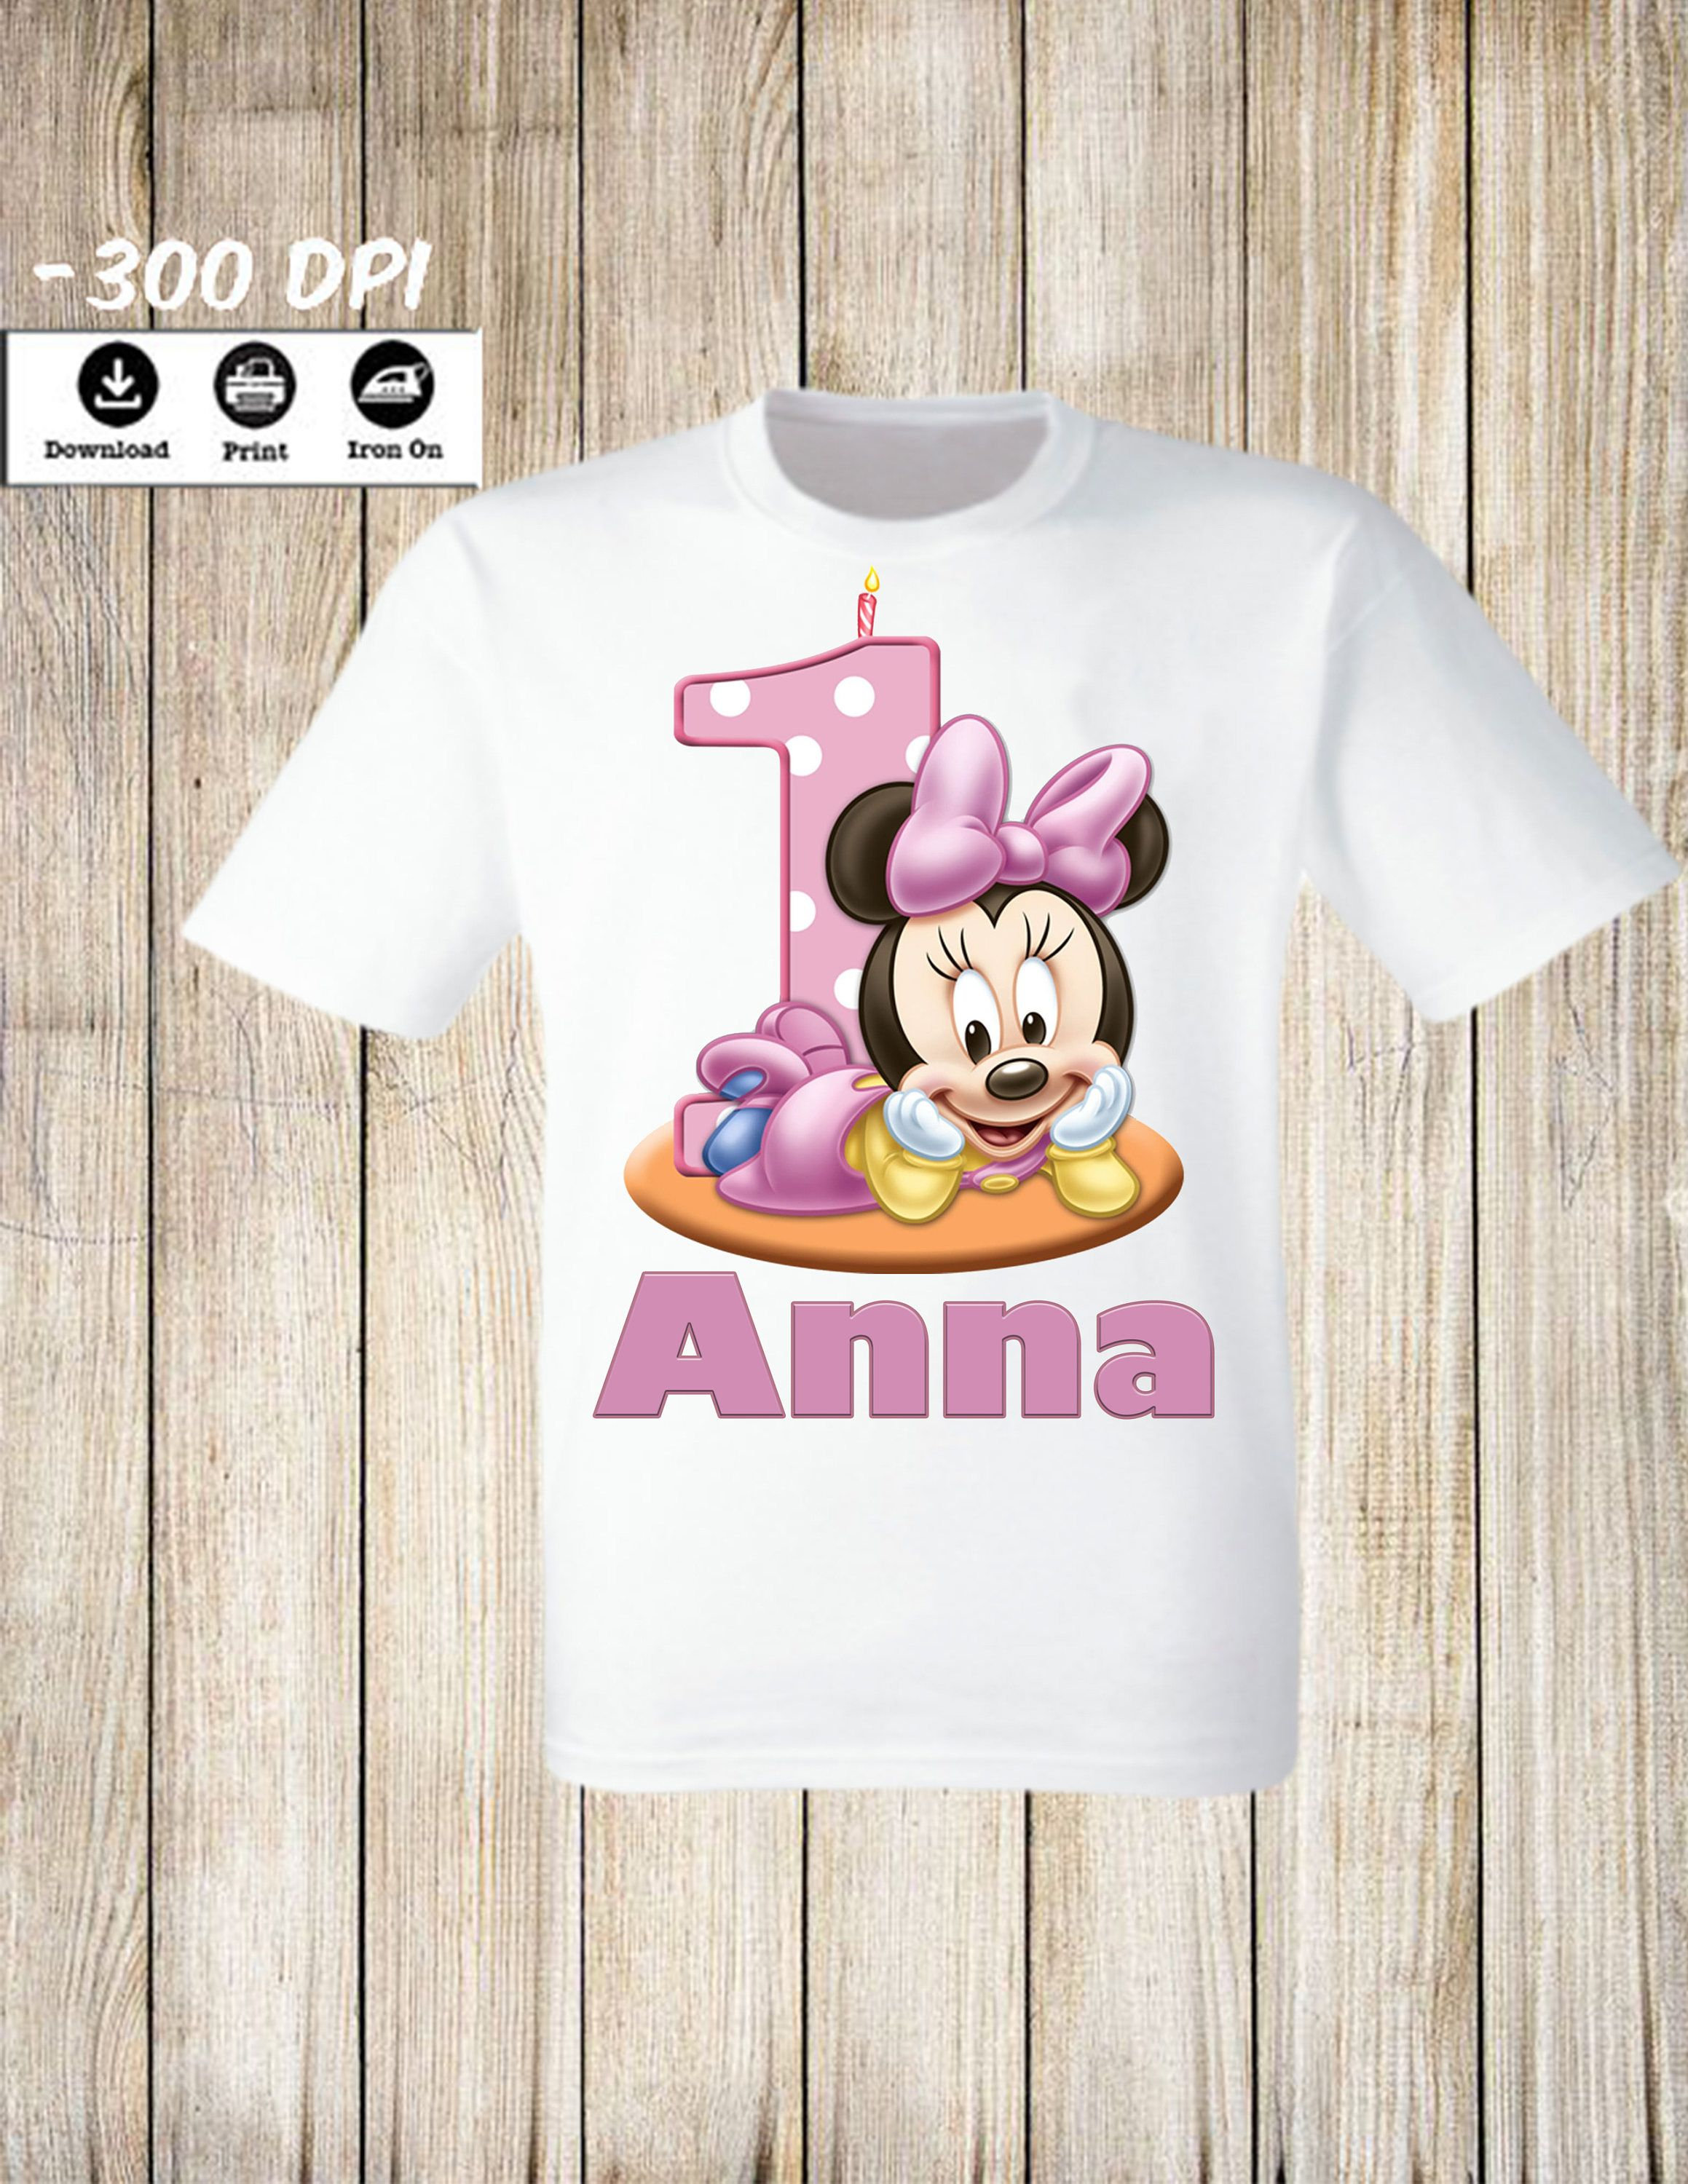 b0fd45dae Personalized Minnie Mouse Birthday Girl iron on t shirt - One Year Old Birthday  Minnie Party Iron on transfer. Party Image.